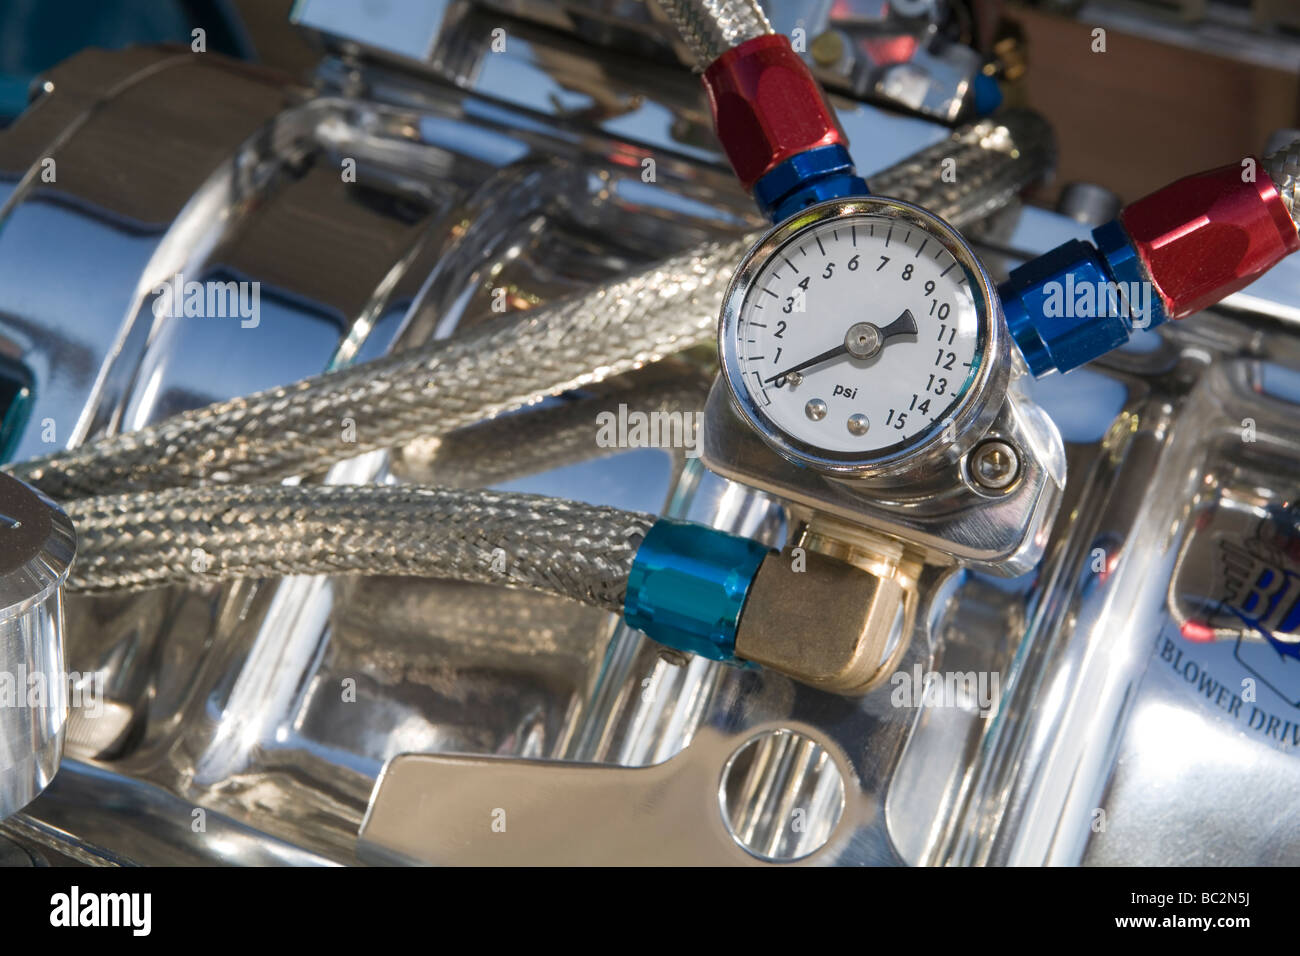 Fuel pressure gauge on heavily modified V8 show performance car engine - Stock Image